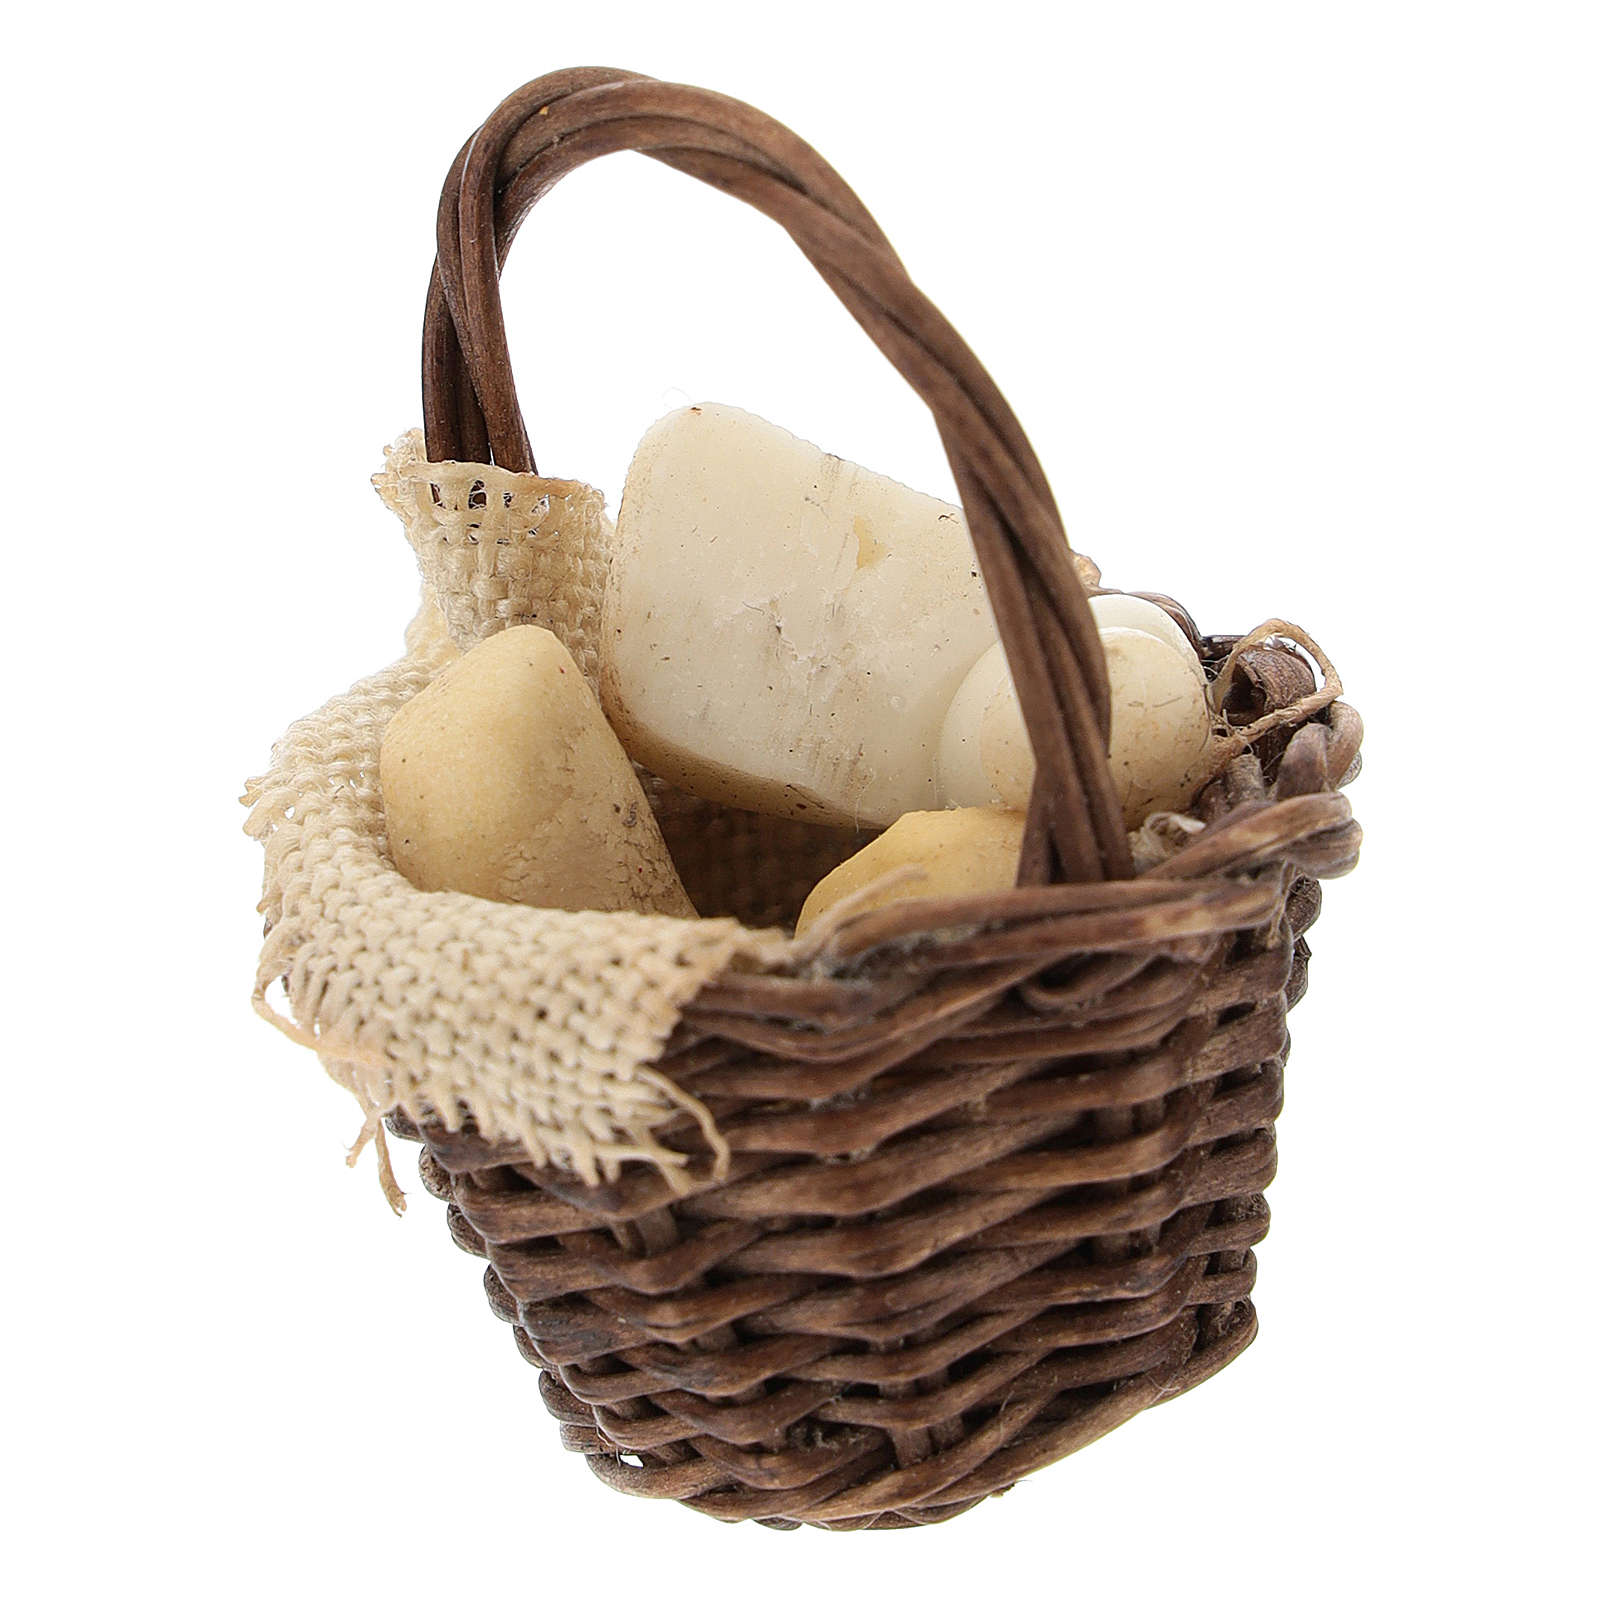 Wicker basket with cheese Nativity scene 12 cm 4